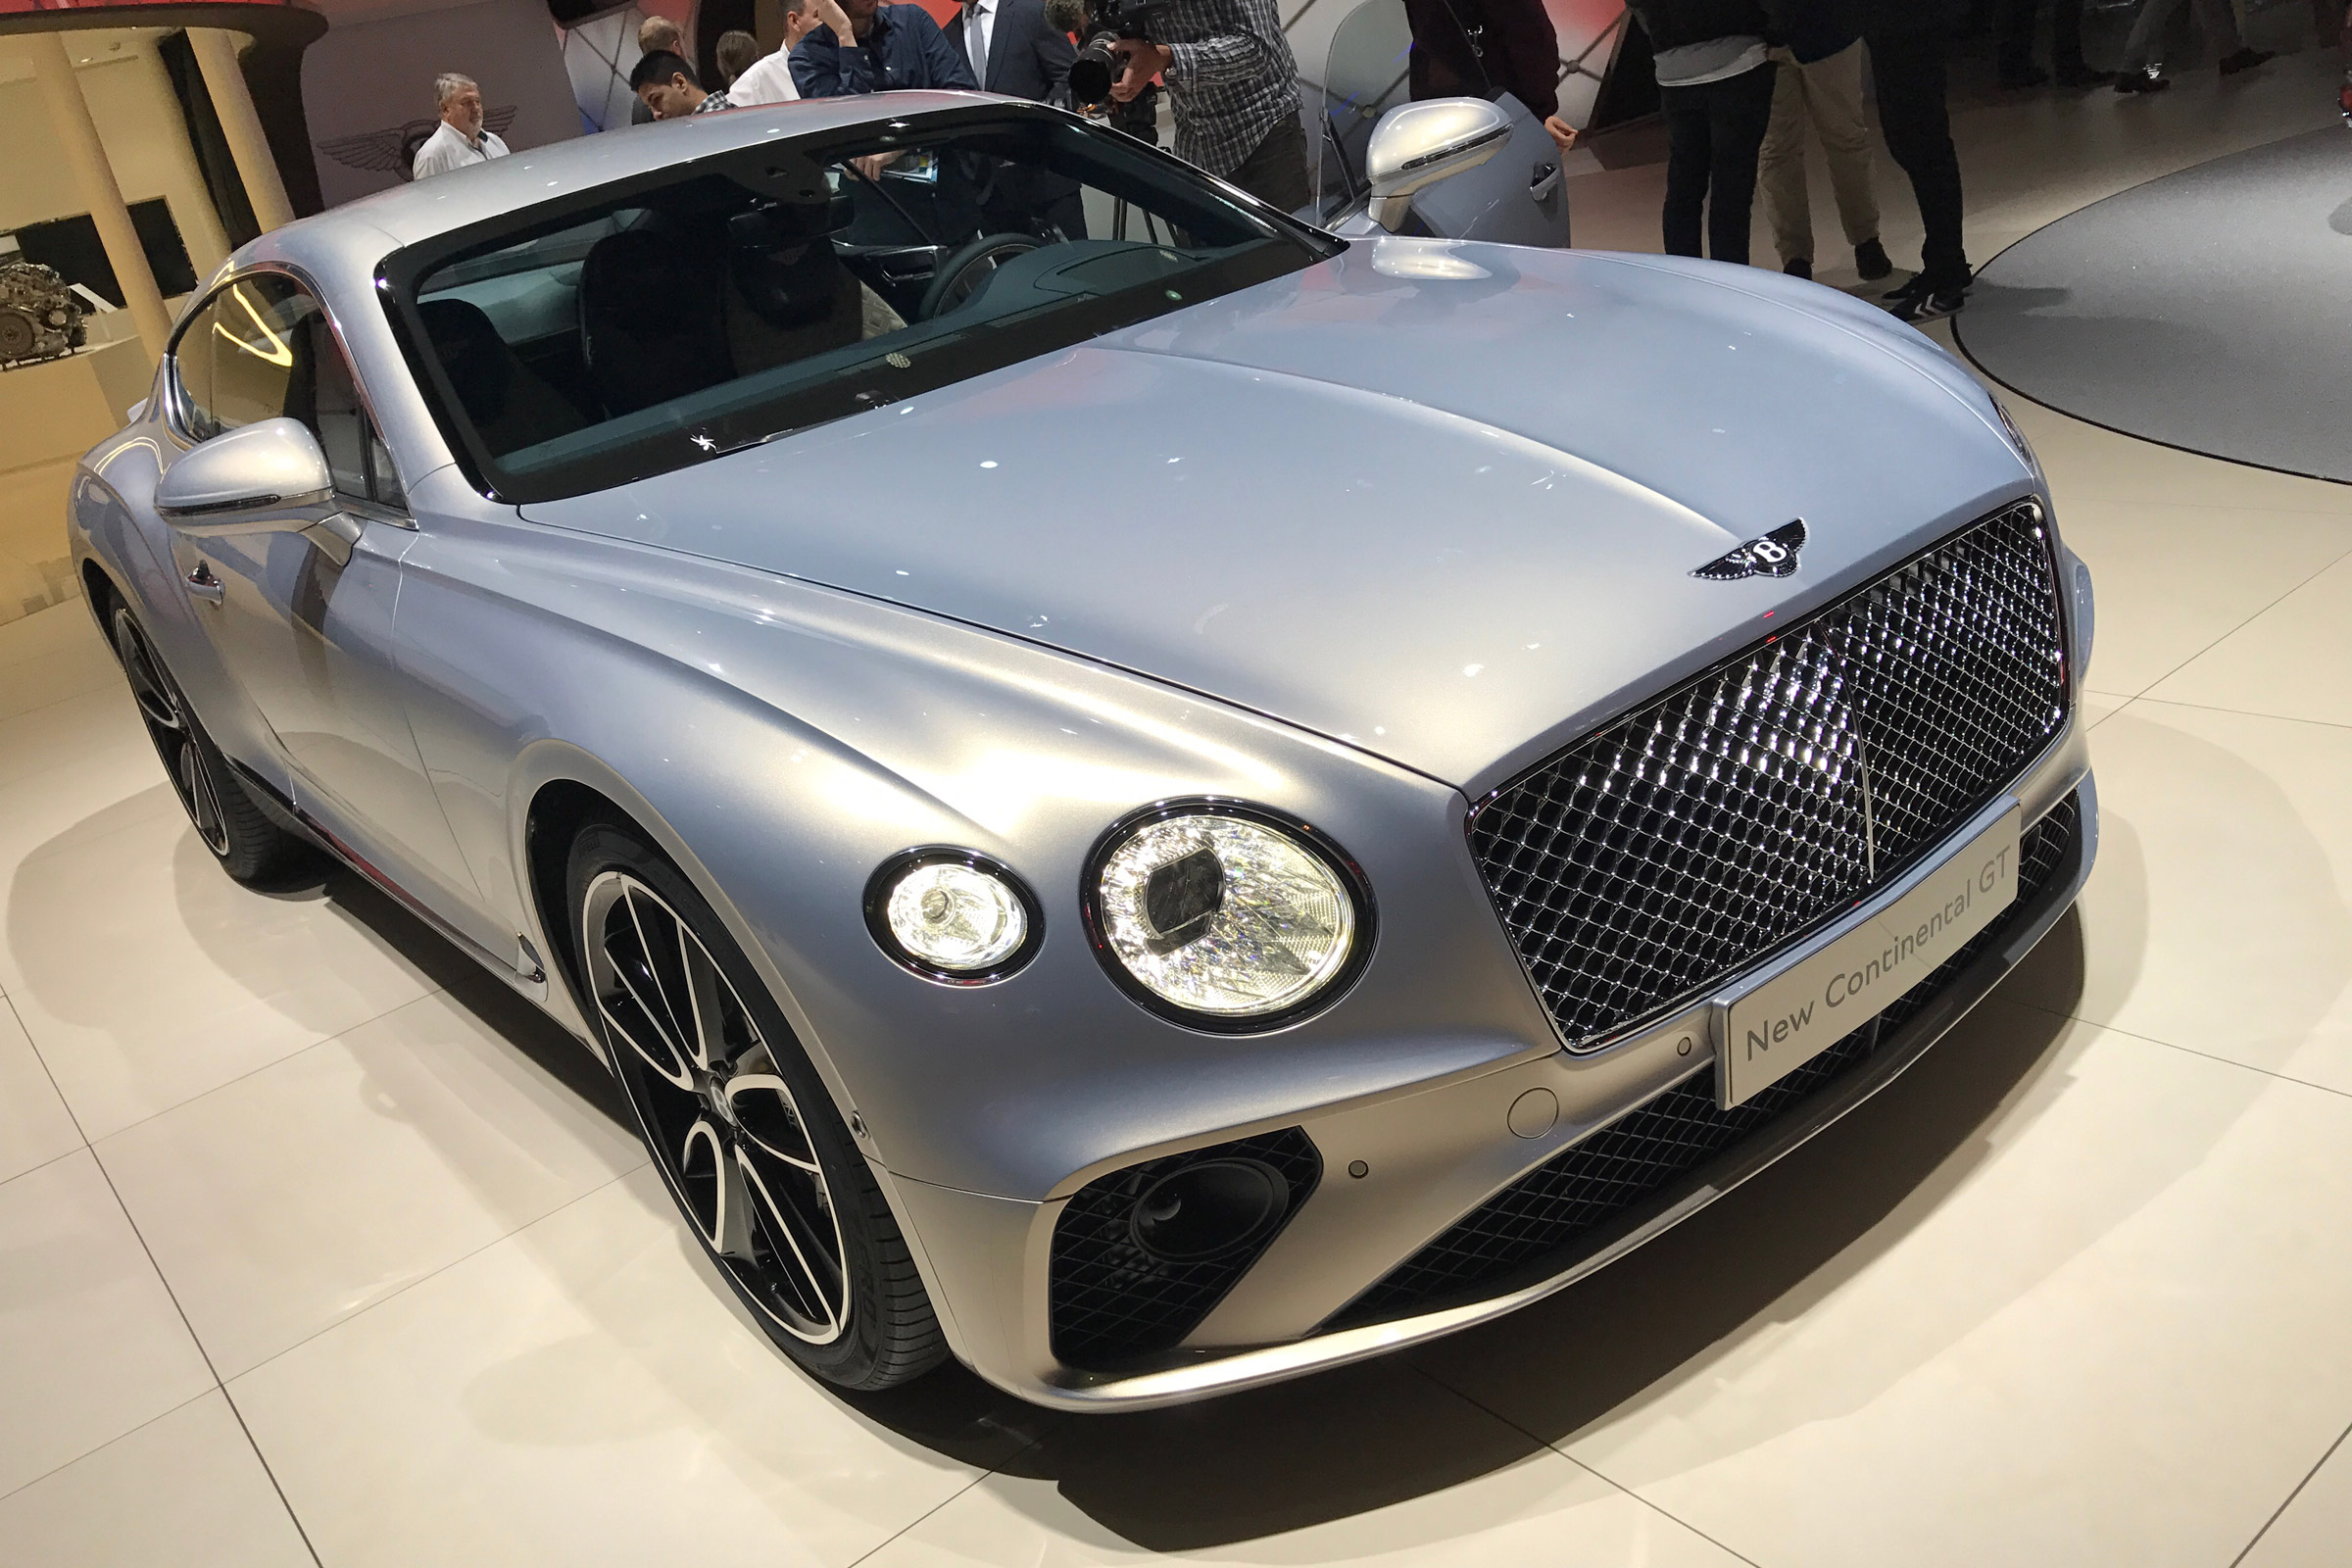 New 2018 Bentley Continental Gt Goes On Display In Frankfurt Auto Express